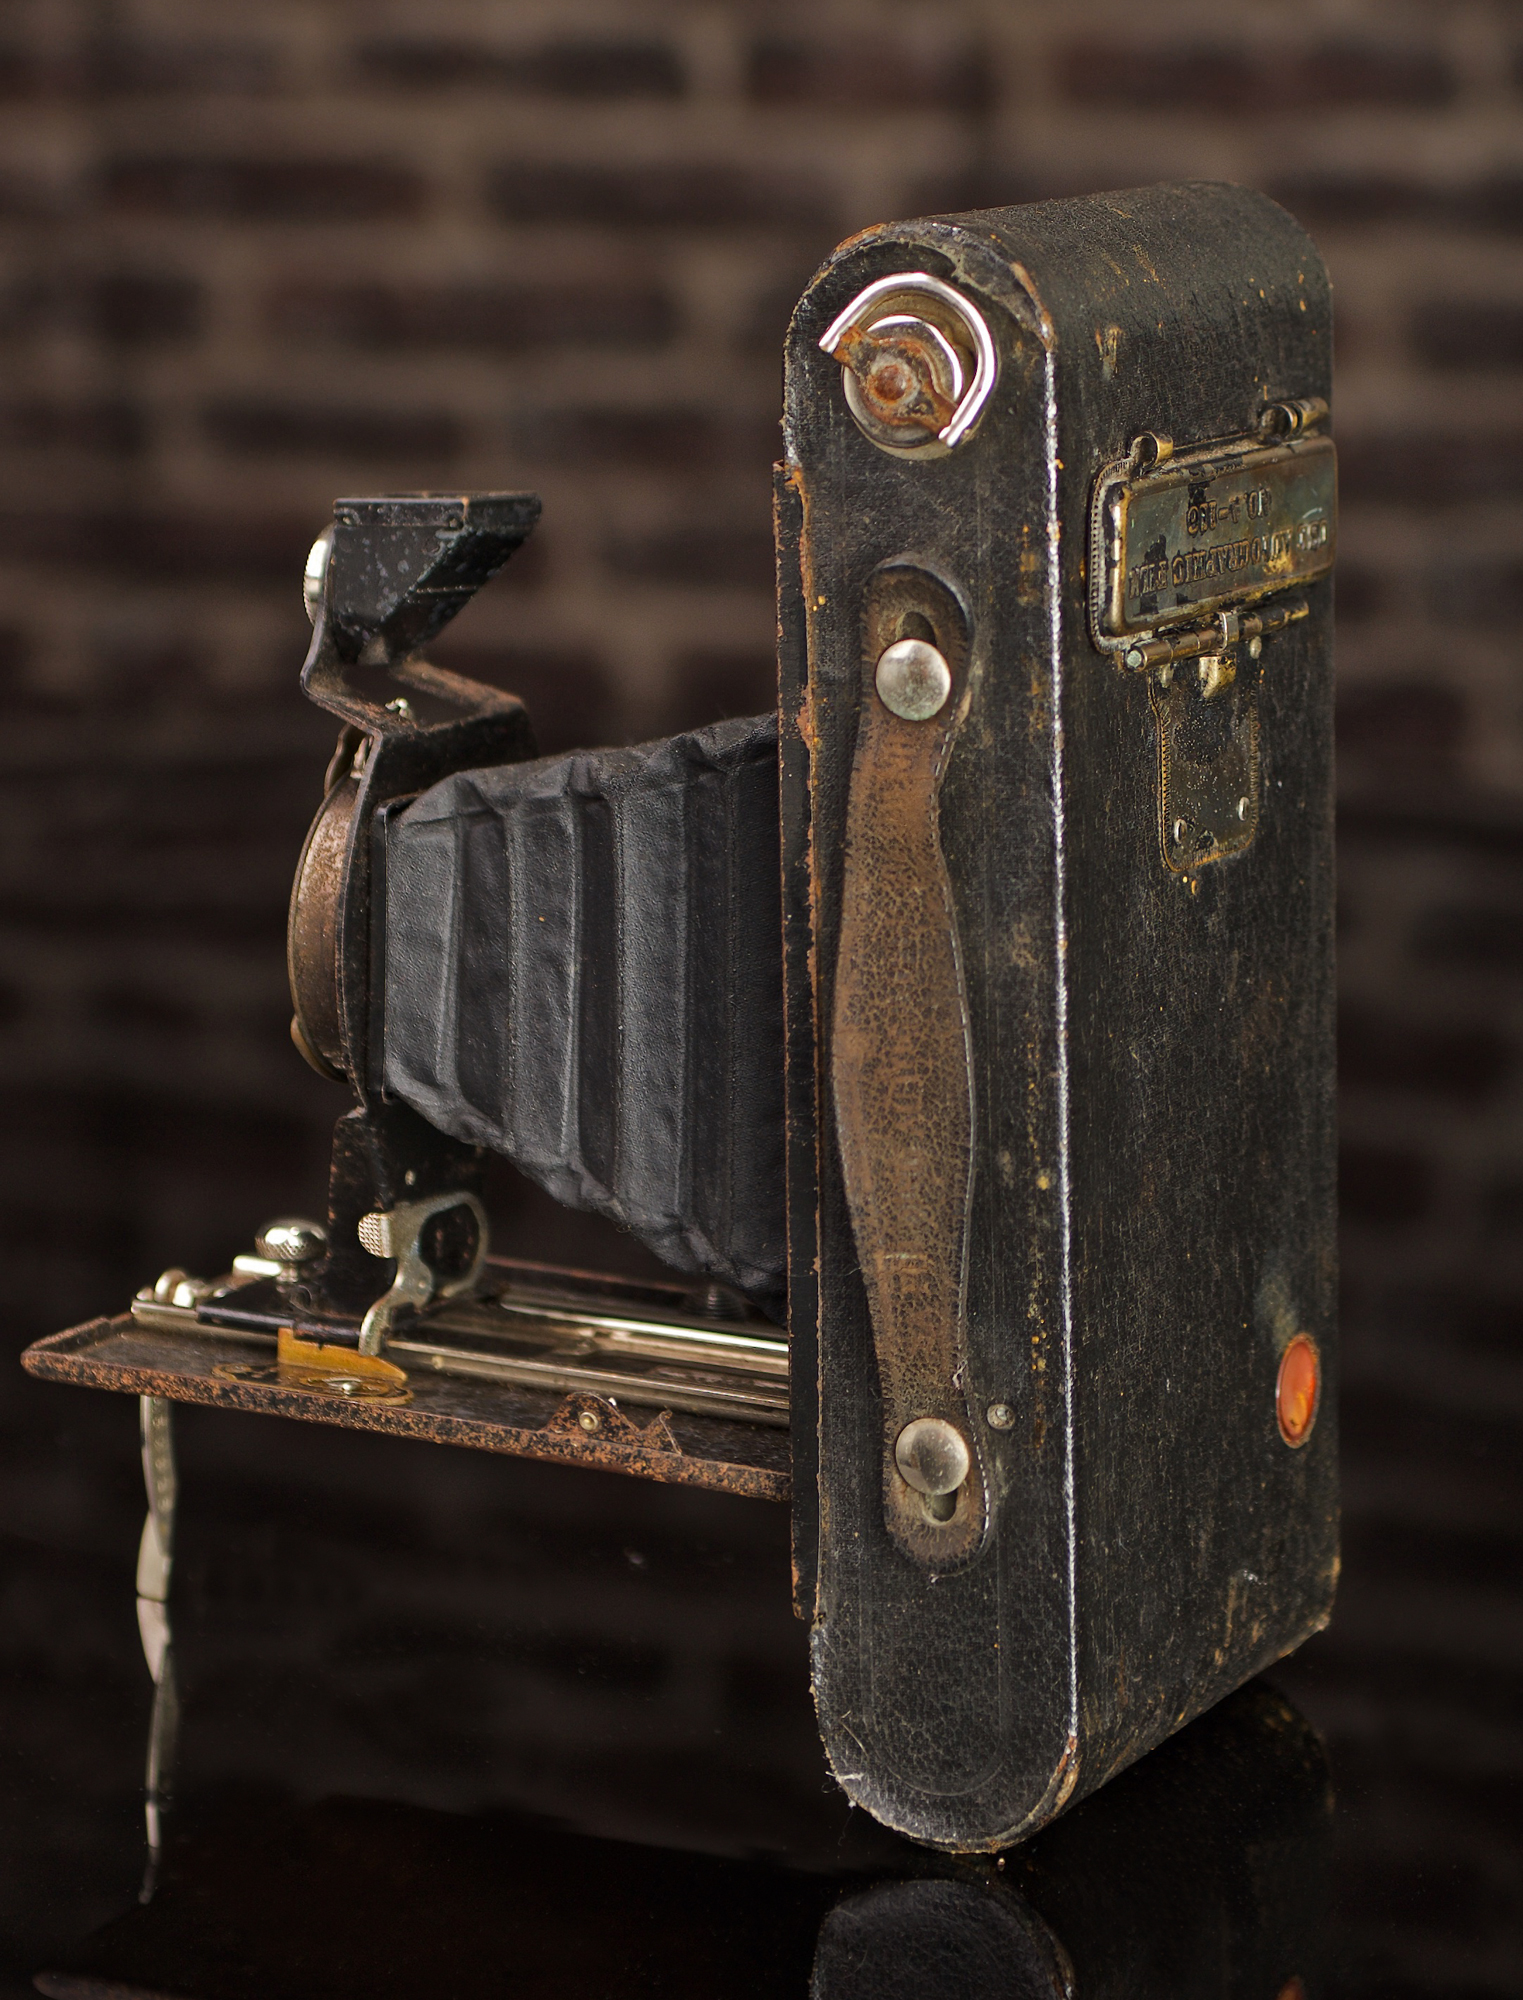 KODAK No 2A FOLDING AUTOGRAPHIC BROWNIE